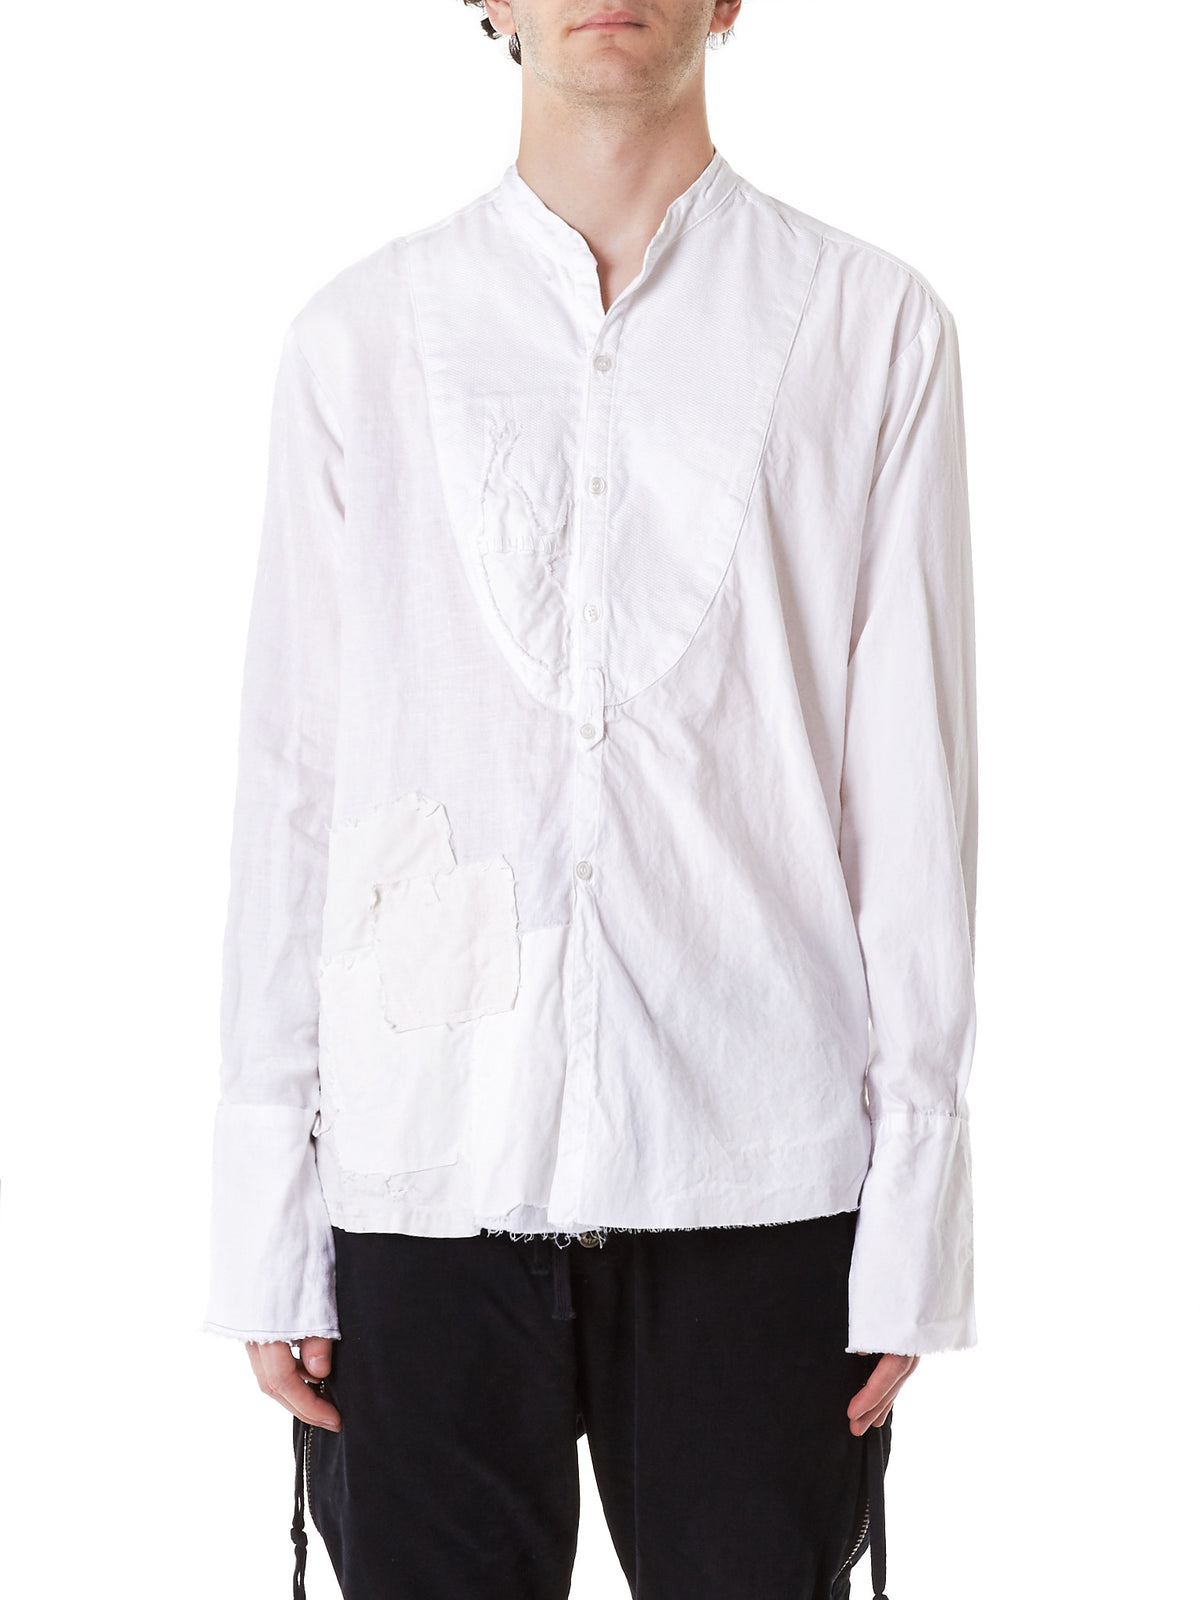 Destroyed Linen Button-Down (GLSS17-M124W-WHITE) - H. Lorenzo